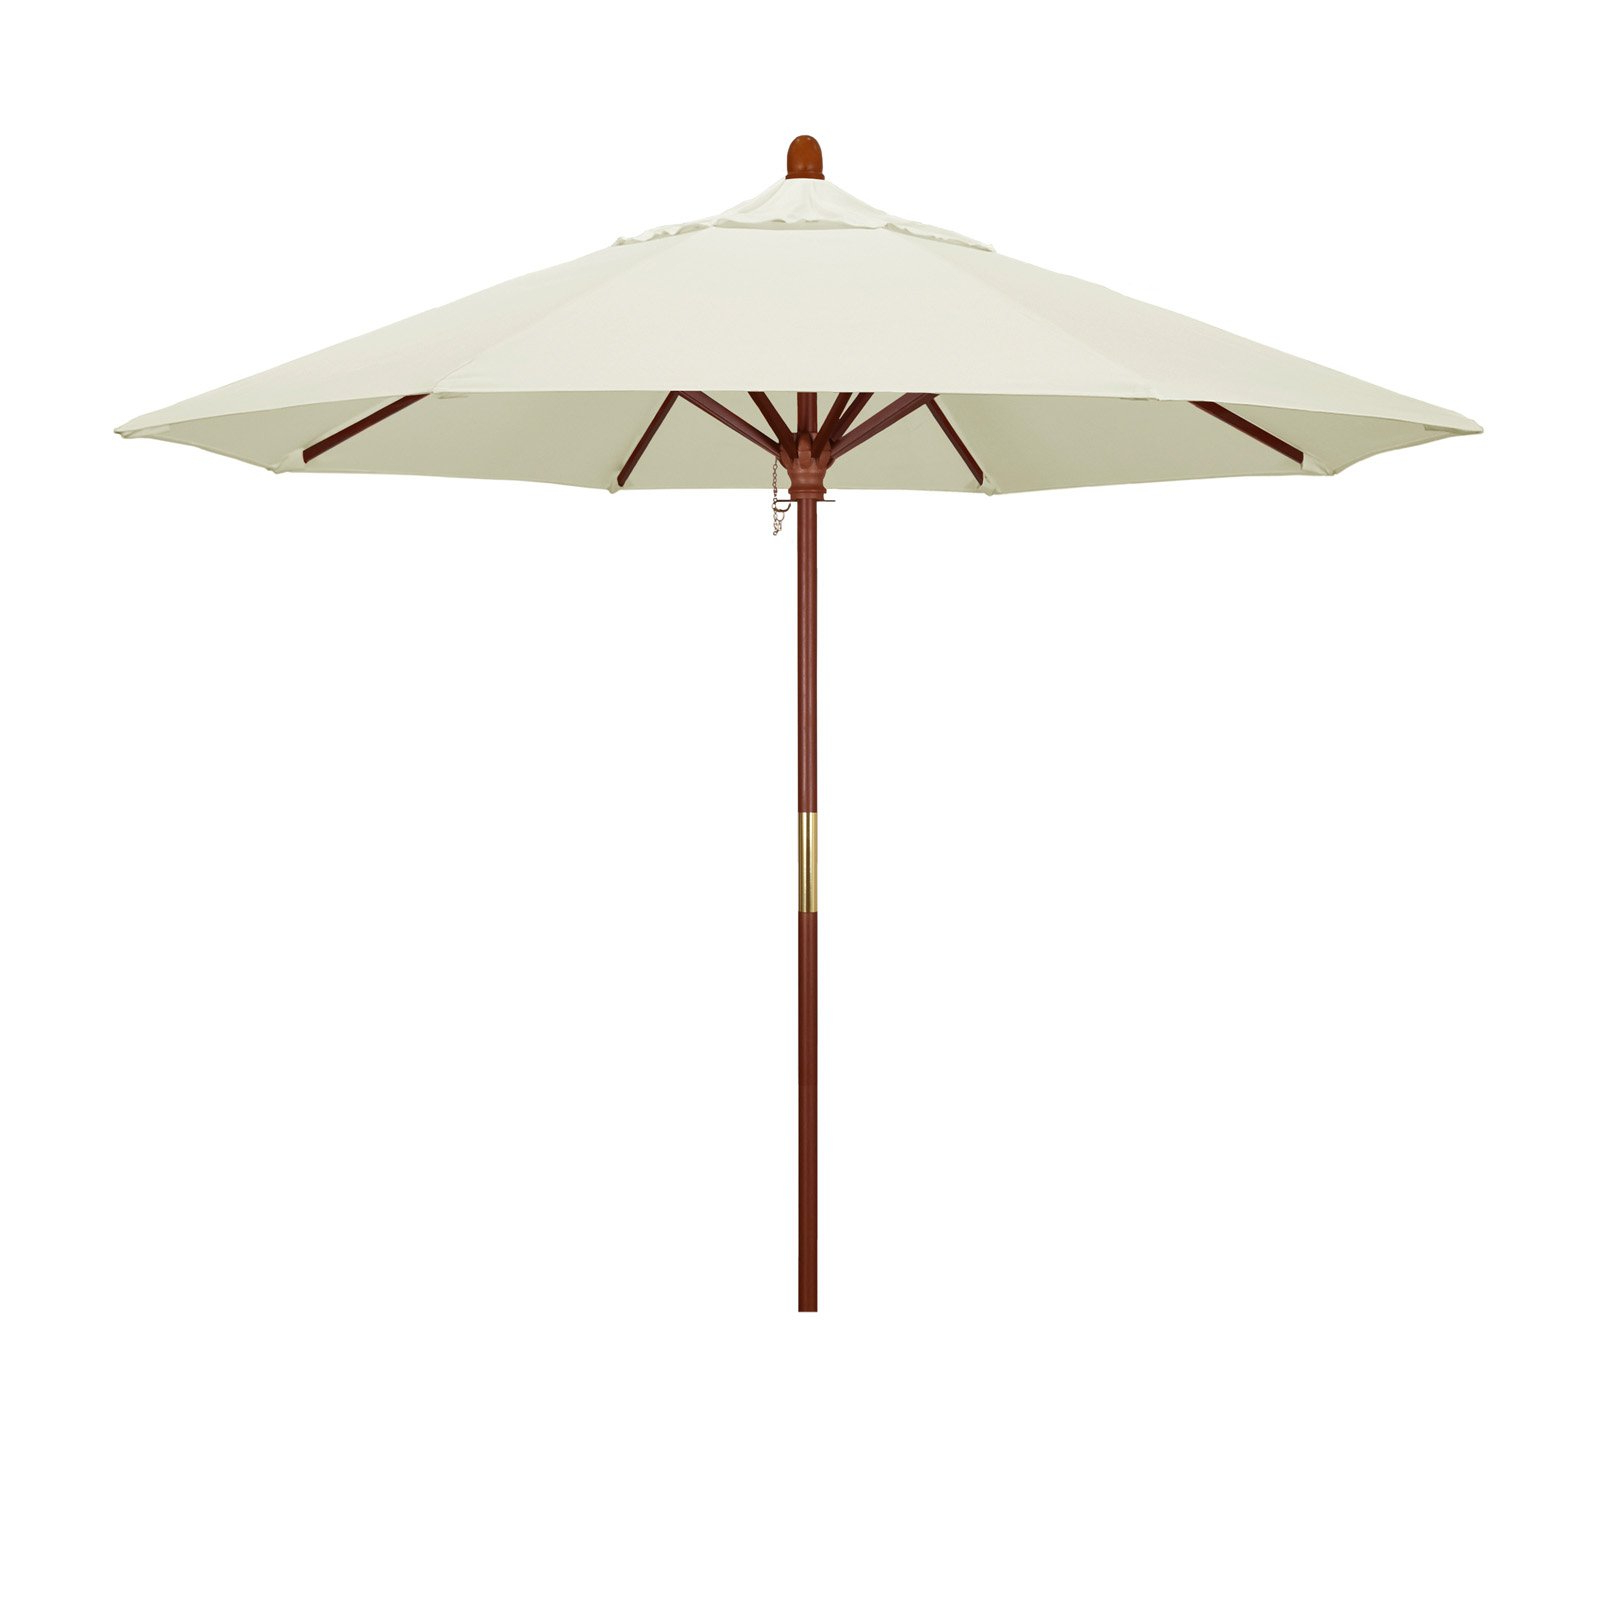 Crediton Market Umbrellas Intended For Latest California Umbrella 9 Ft (View 5 of 20)